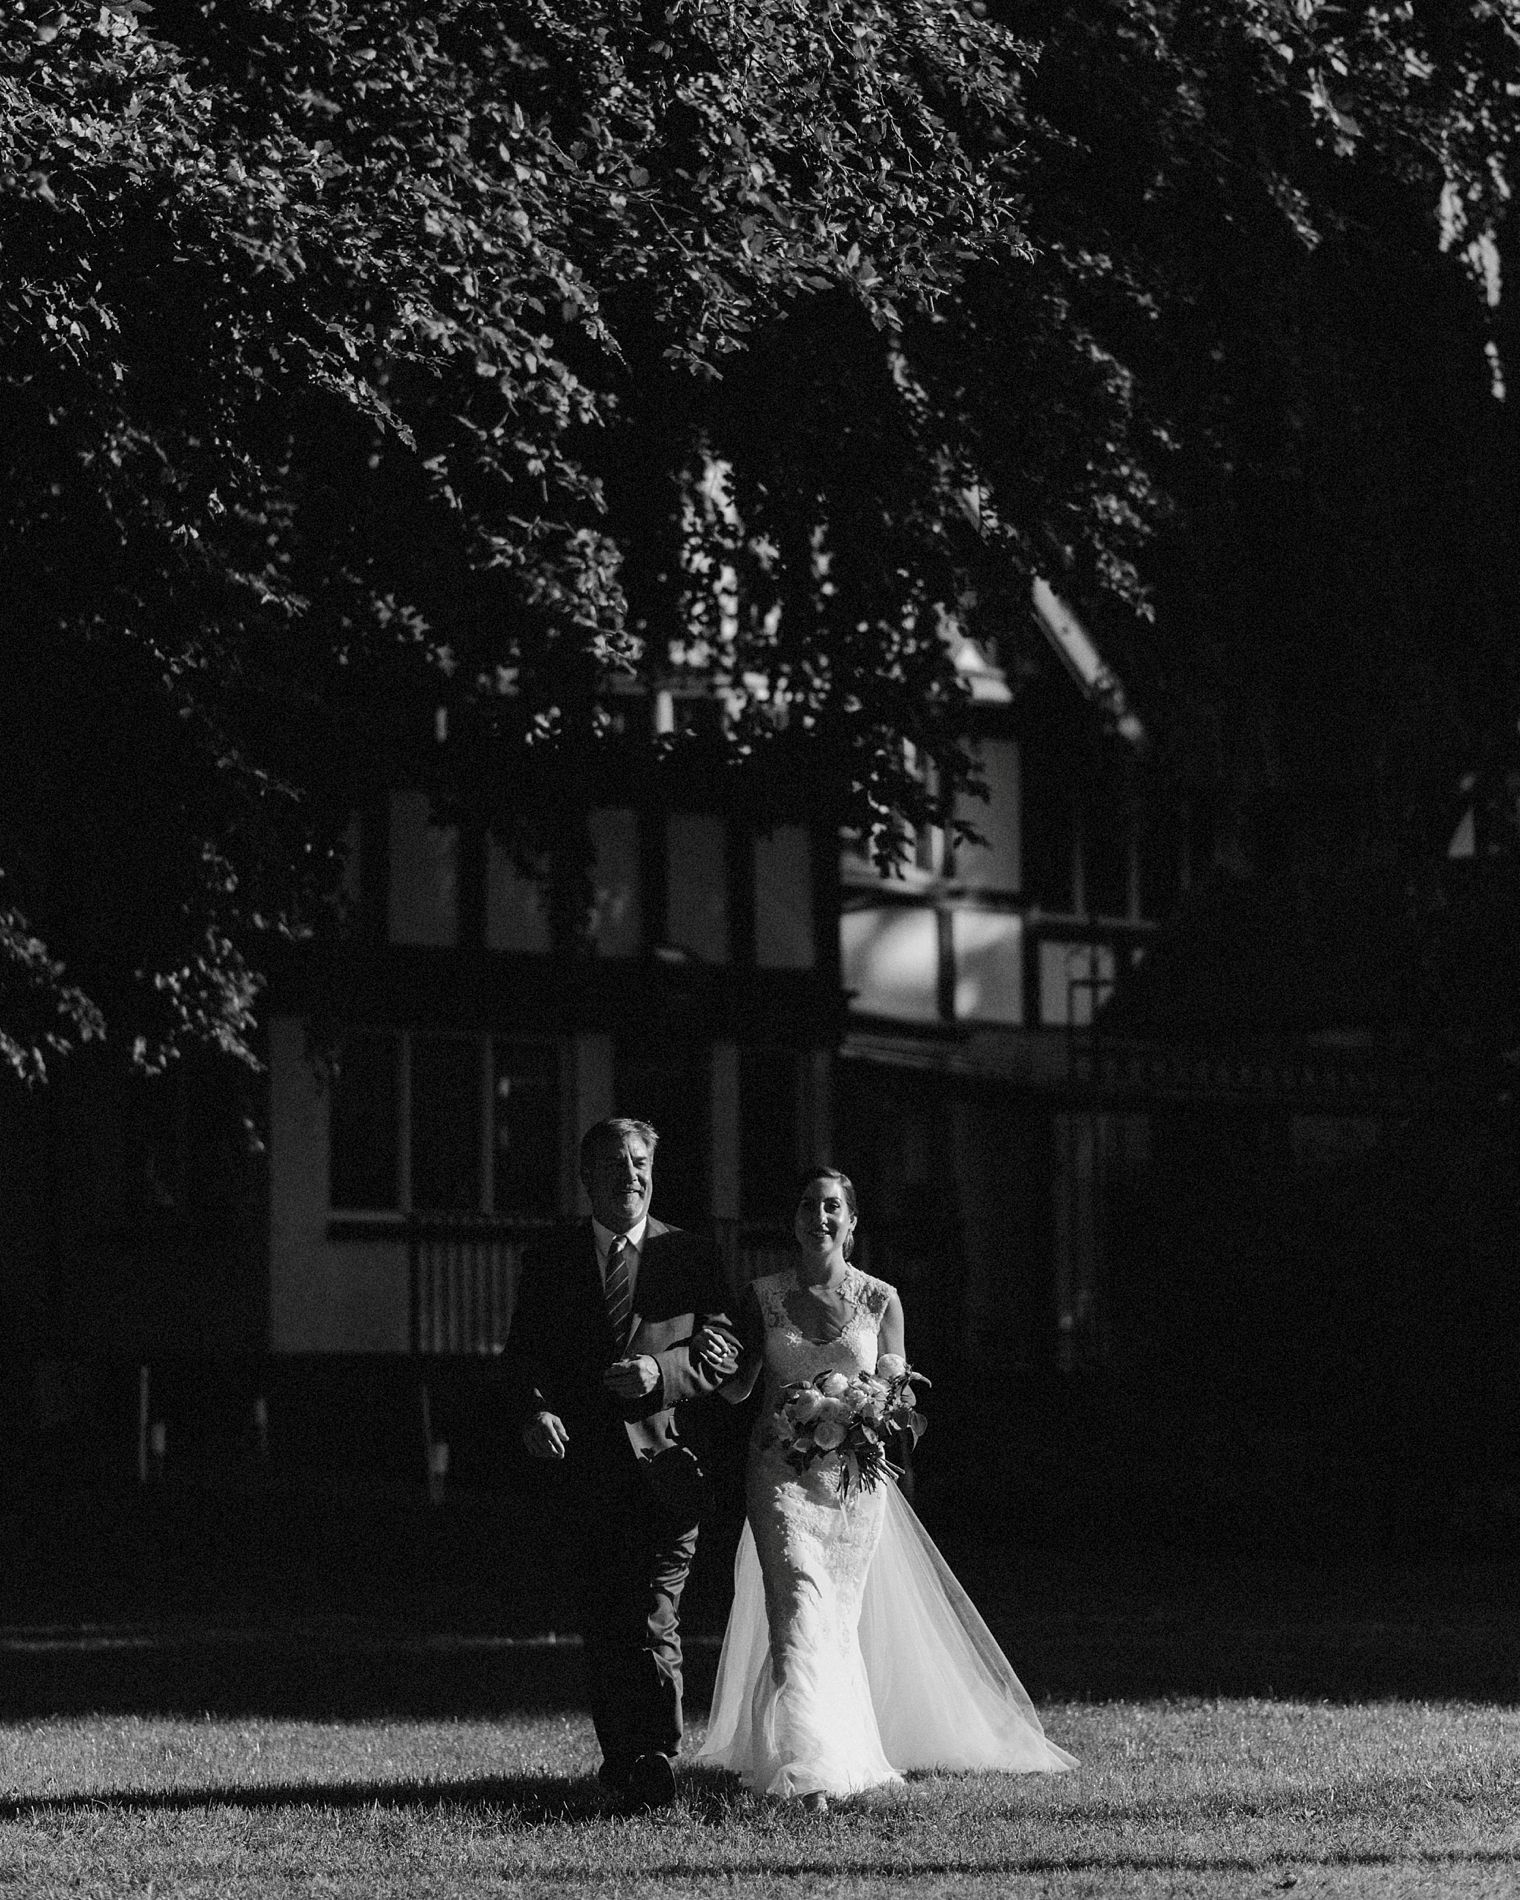 wedding ceremony at brock house in vancouver